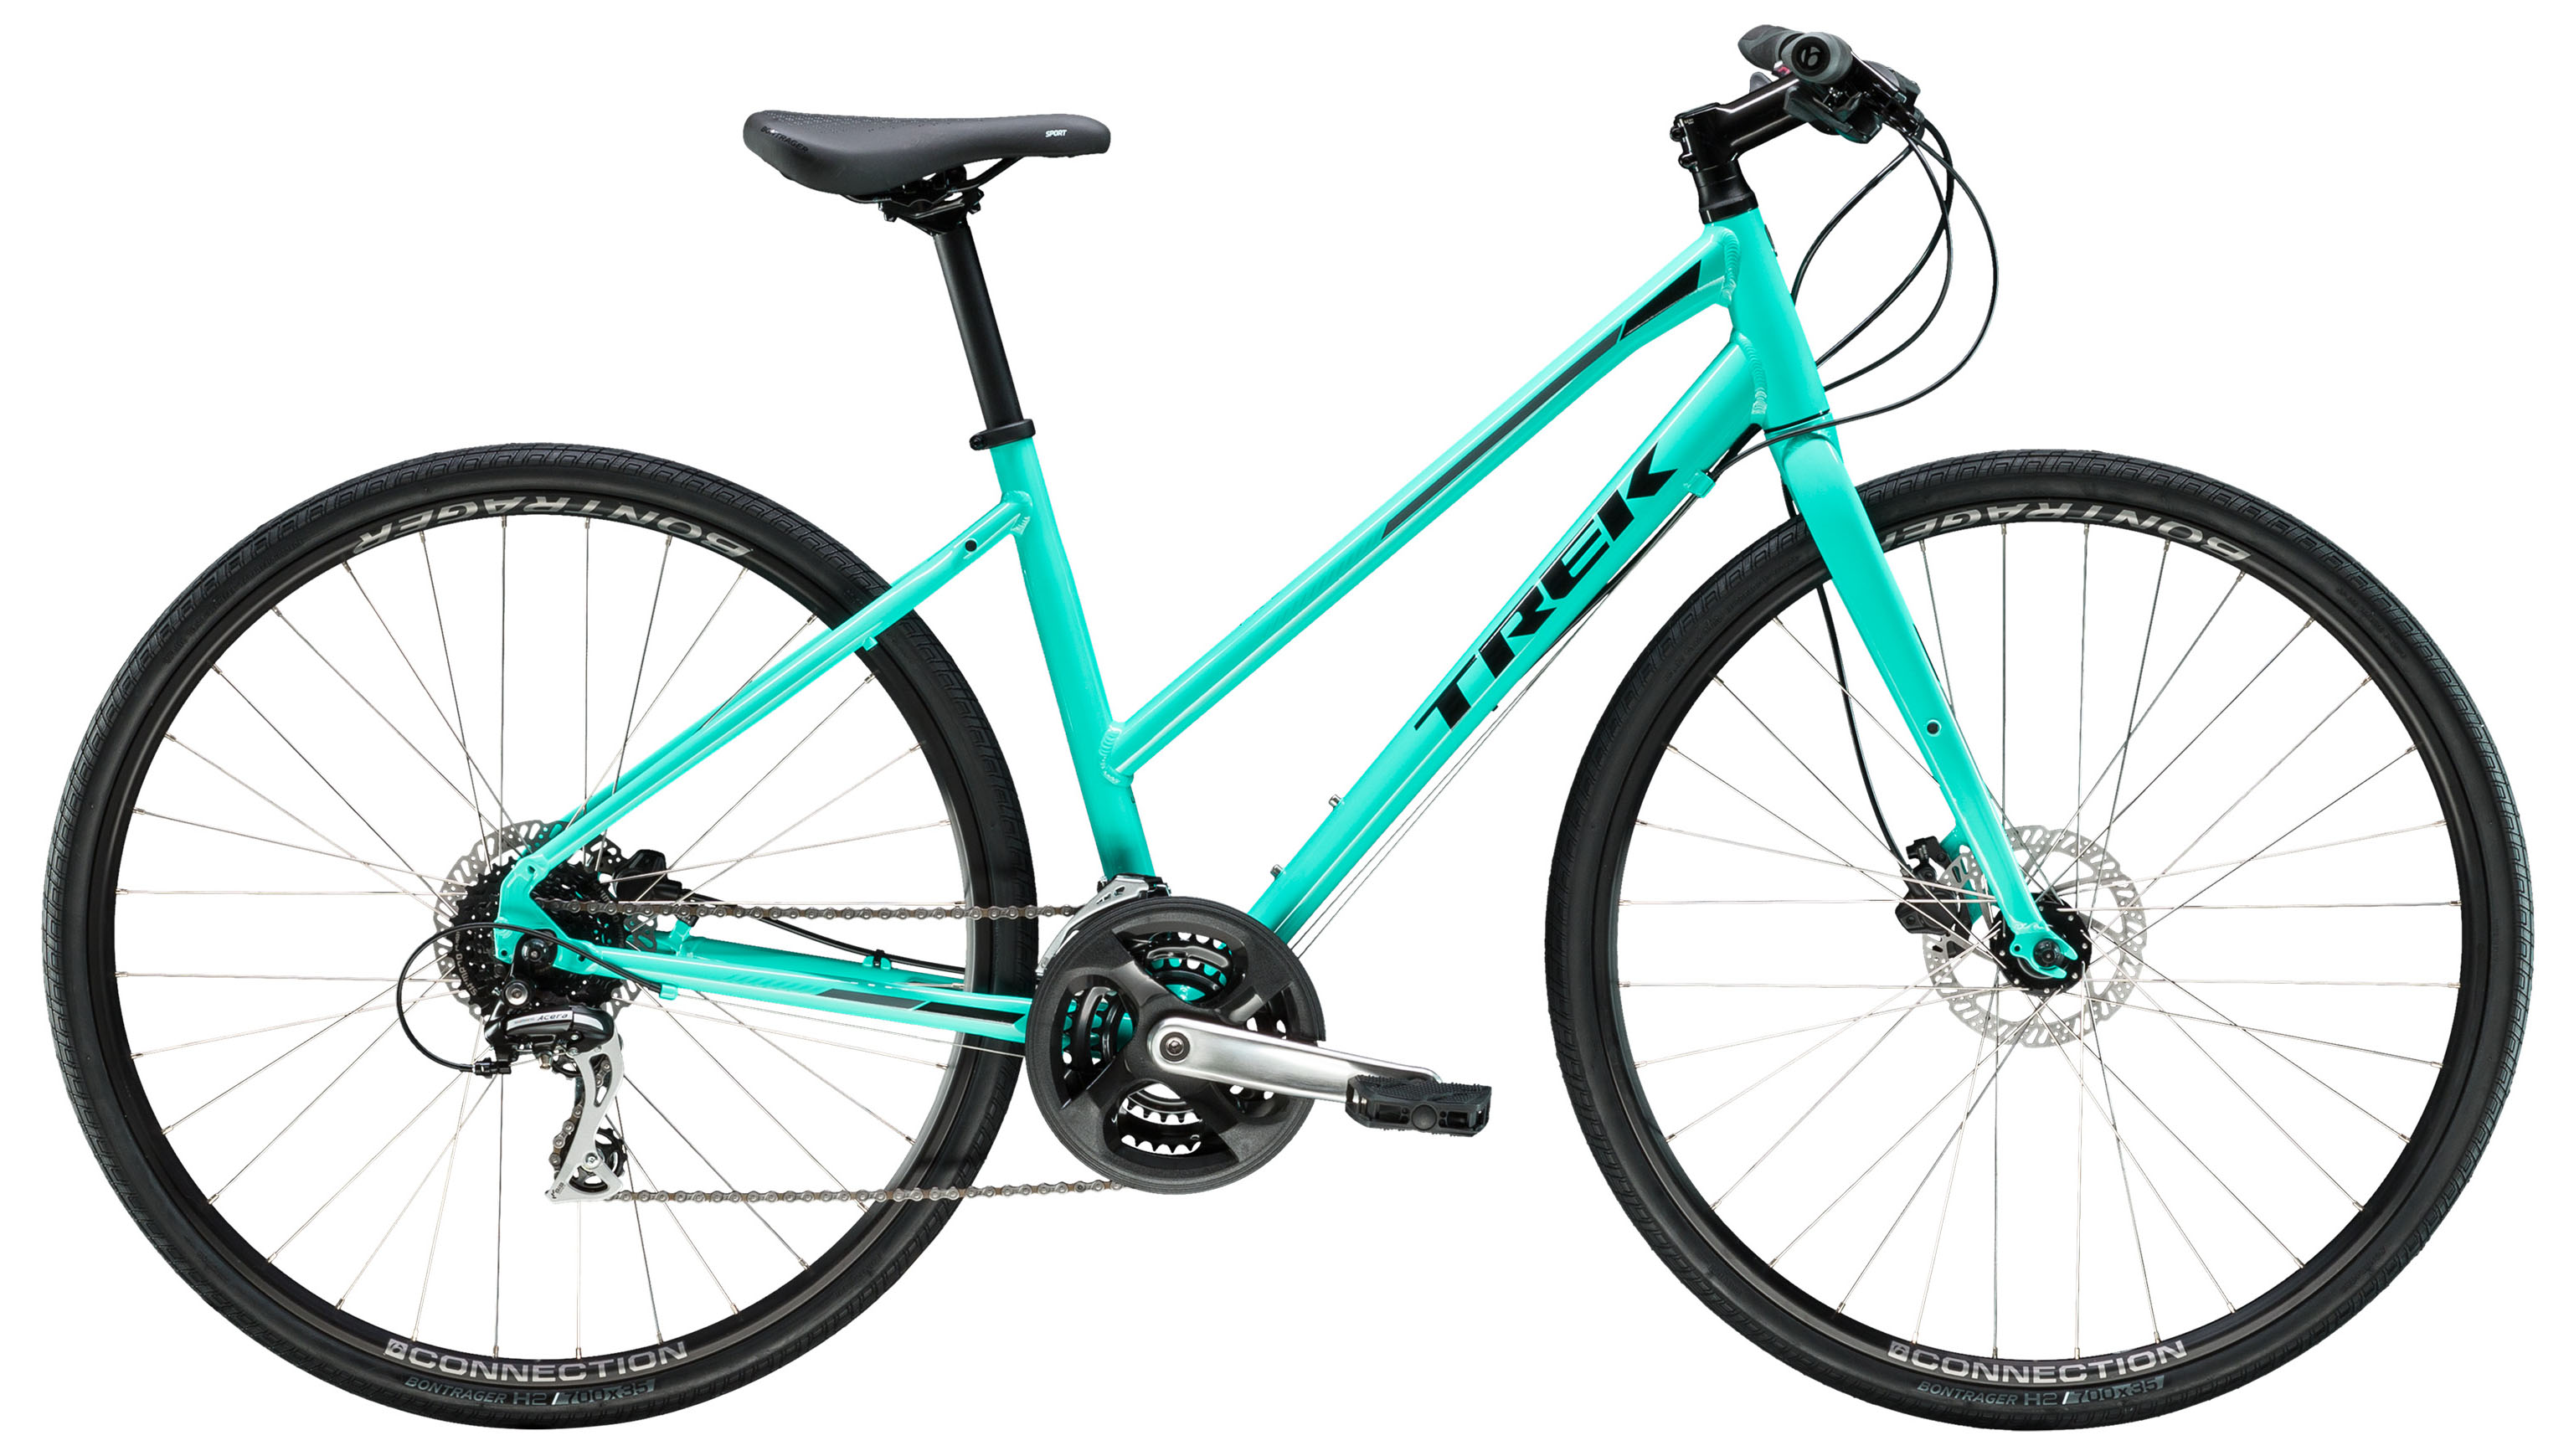 Велосипед Trek FX 2 Womens Disc Stagger 2019 sonia урна для туалета